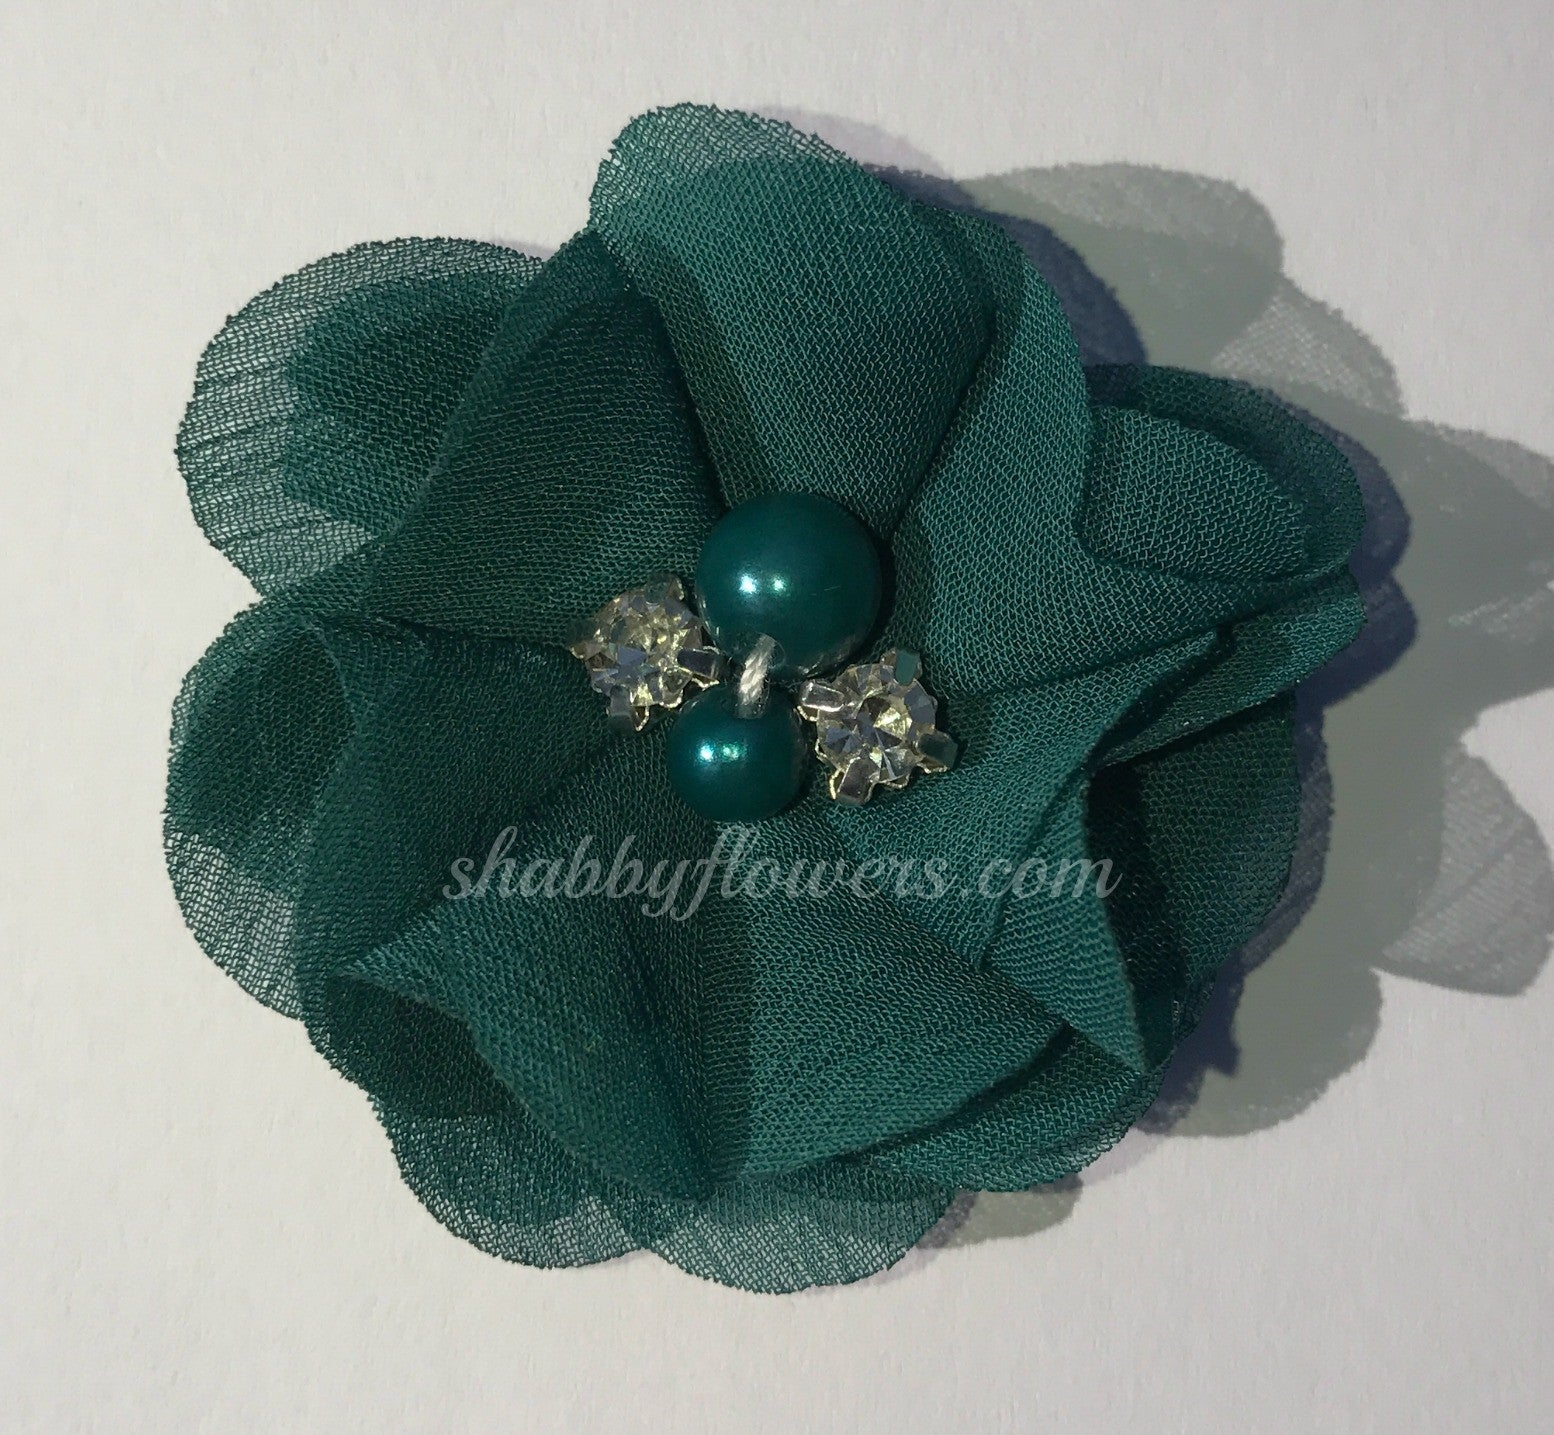 Pearl & Rhinestone Flower- Teal - shabbyflowers.com